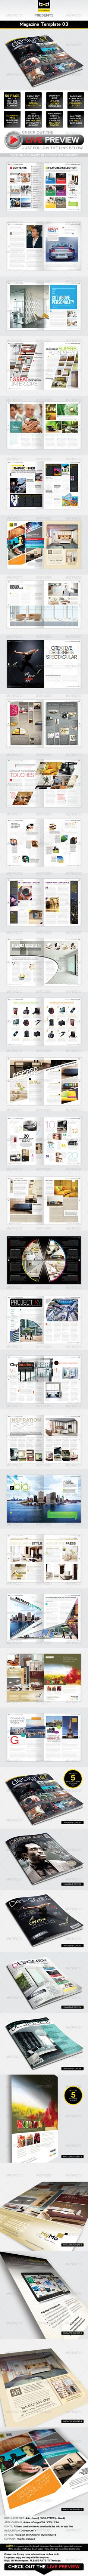 #Magazine Template - InDesign 56 Page Layout V3 - Magazines Print Templates Download here:   https://graphicriver.net/item/magazine-template-indesign-56-page-layout-v3/3296188?ref=suz_562geid